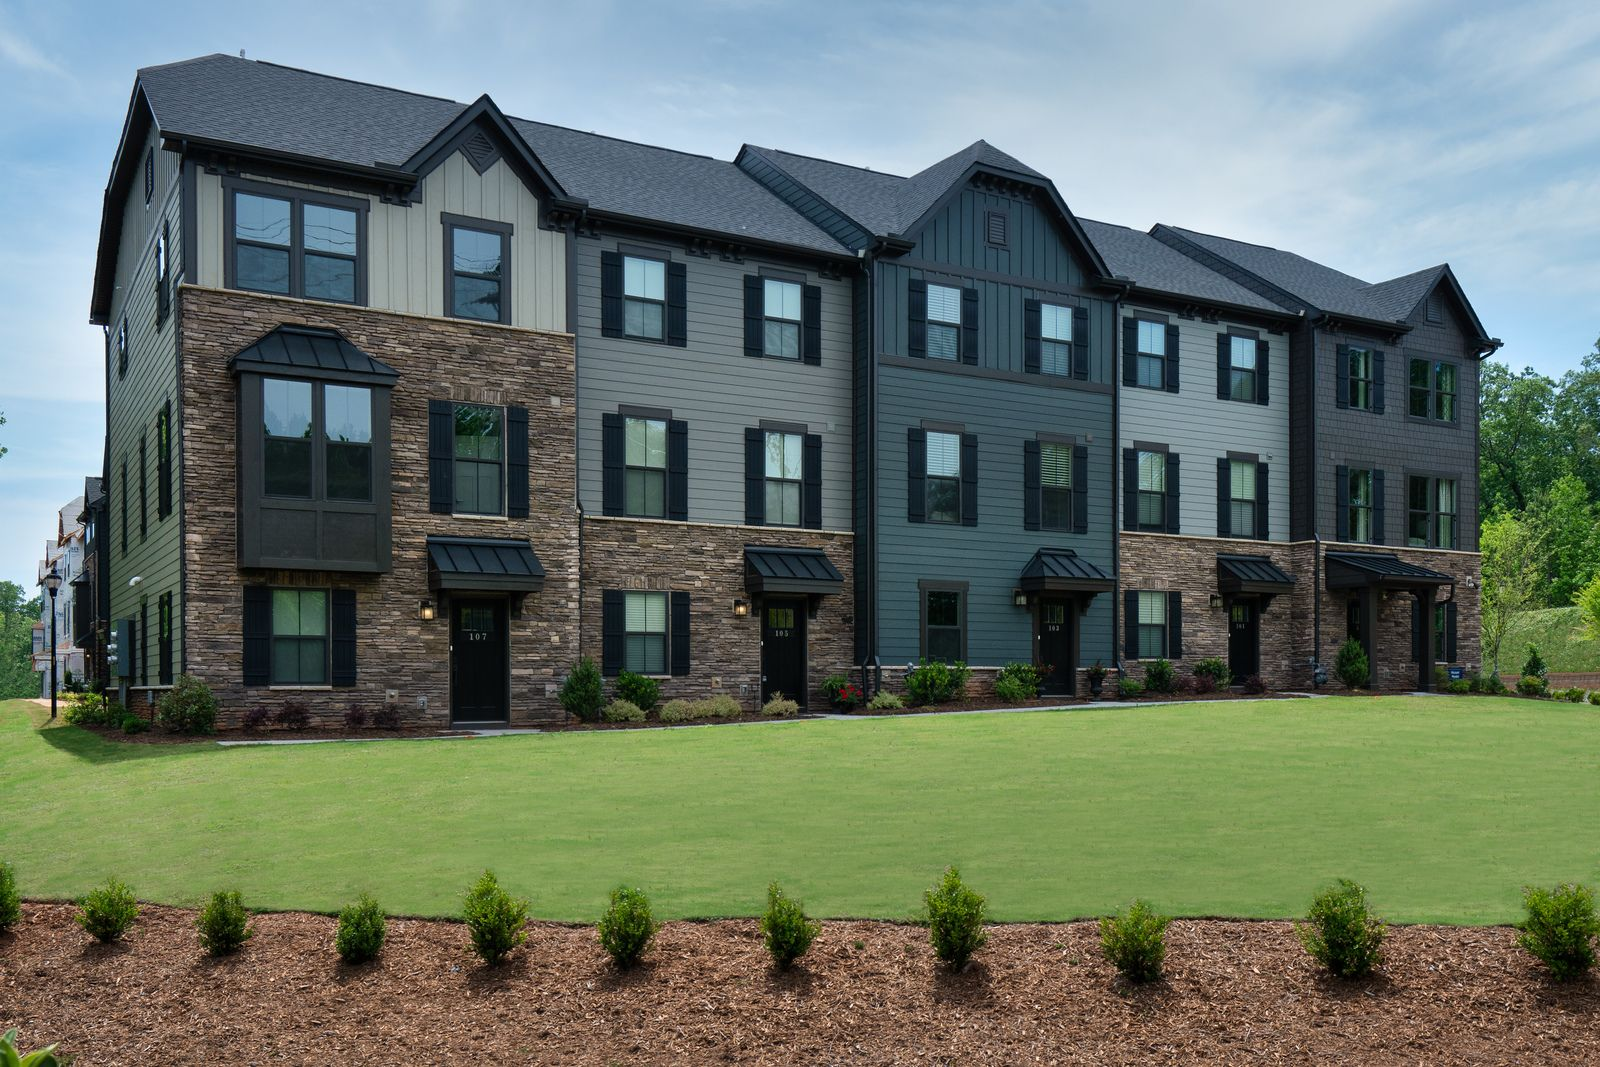 Own a new townhome in the Verdae Corridor with front door access to the Swamp Rabbit Trail.:A quick walk to all of your favorite spots is a way of life here! Schedule an appointment now to learn more!